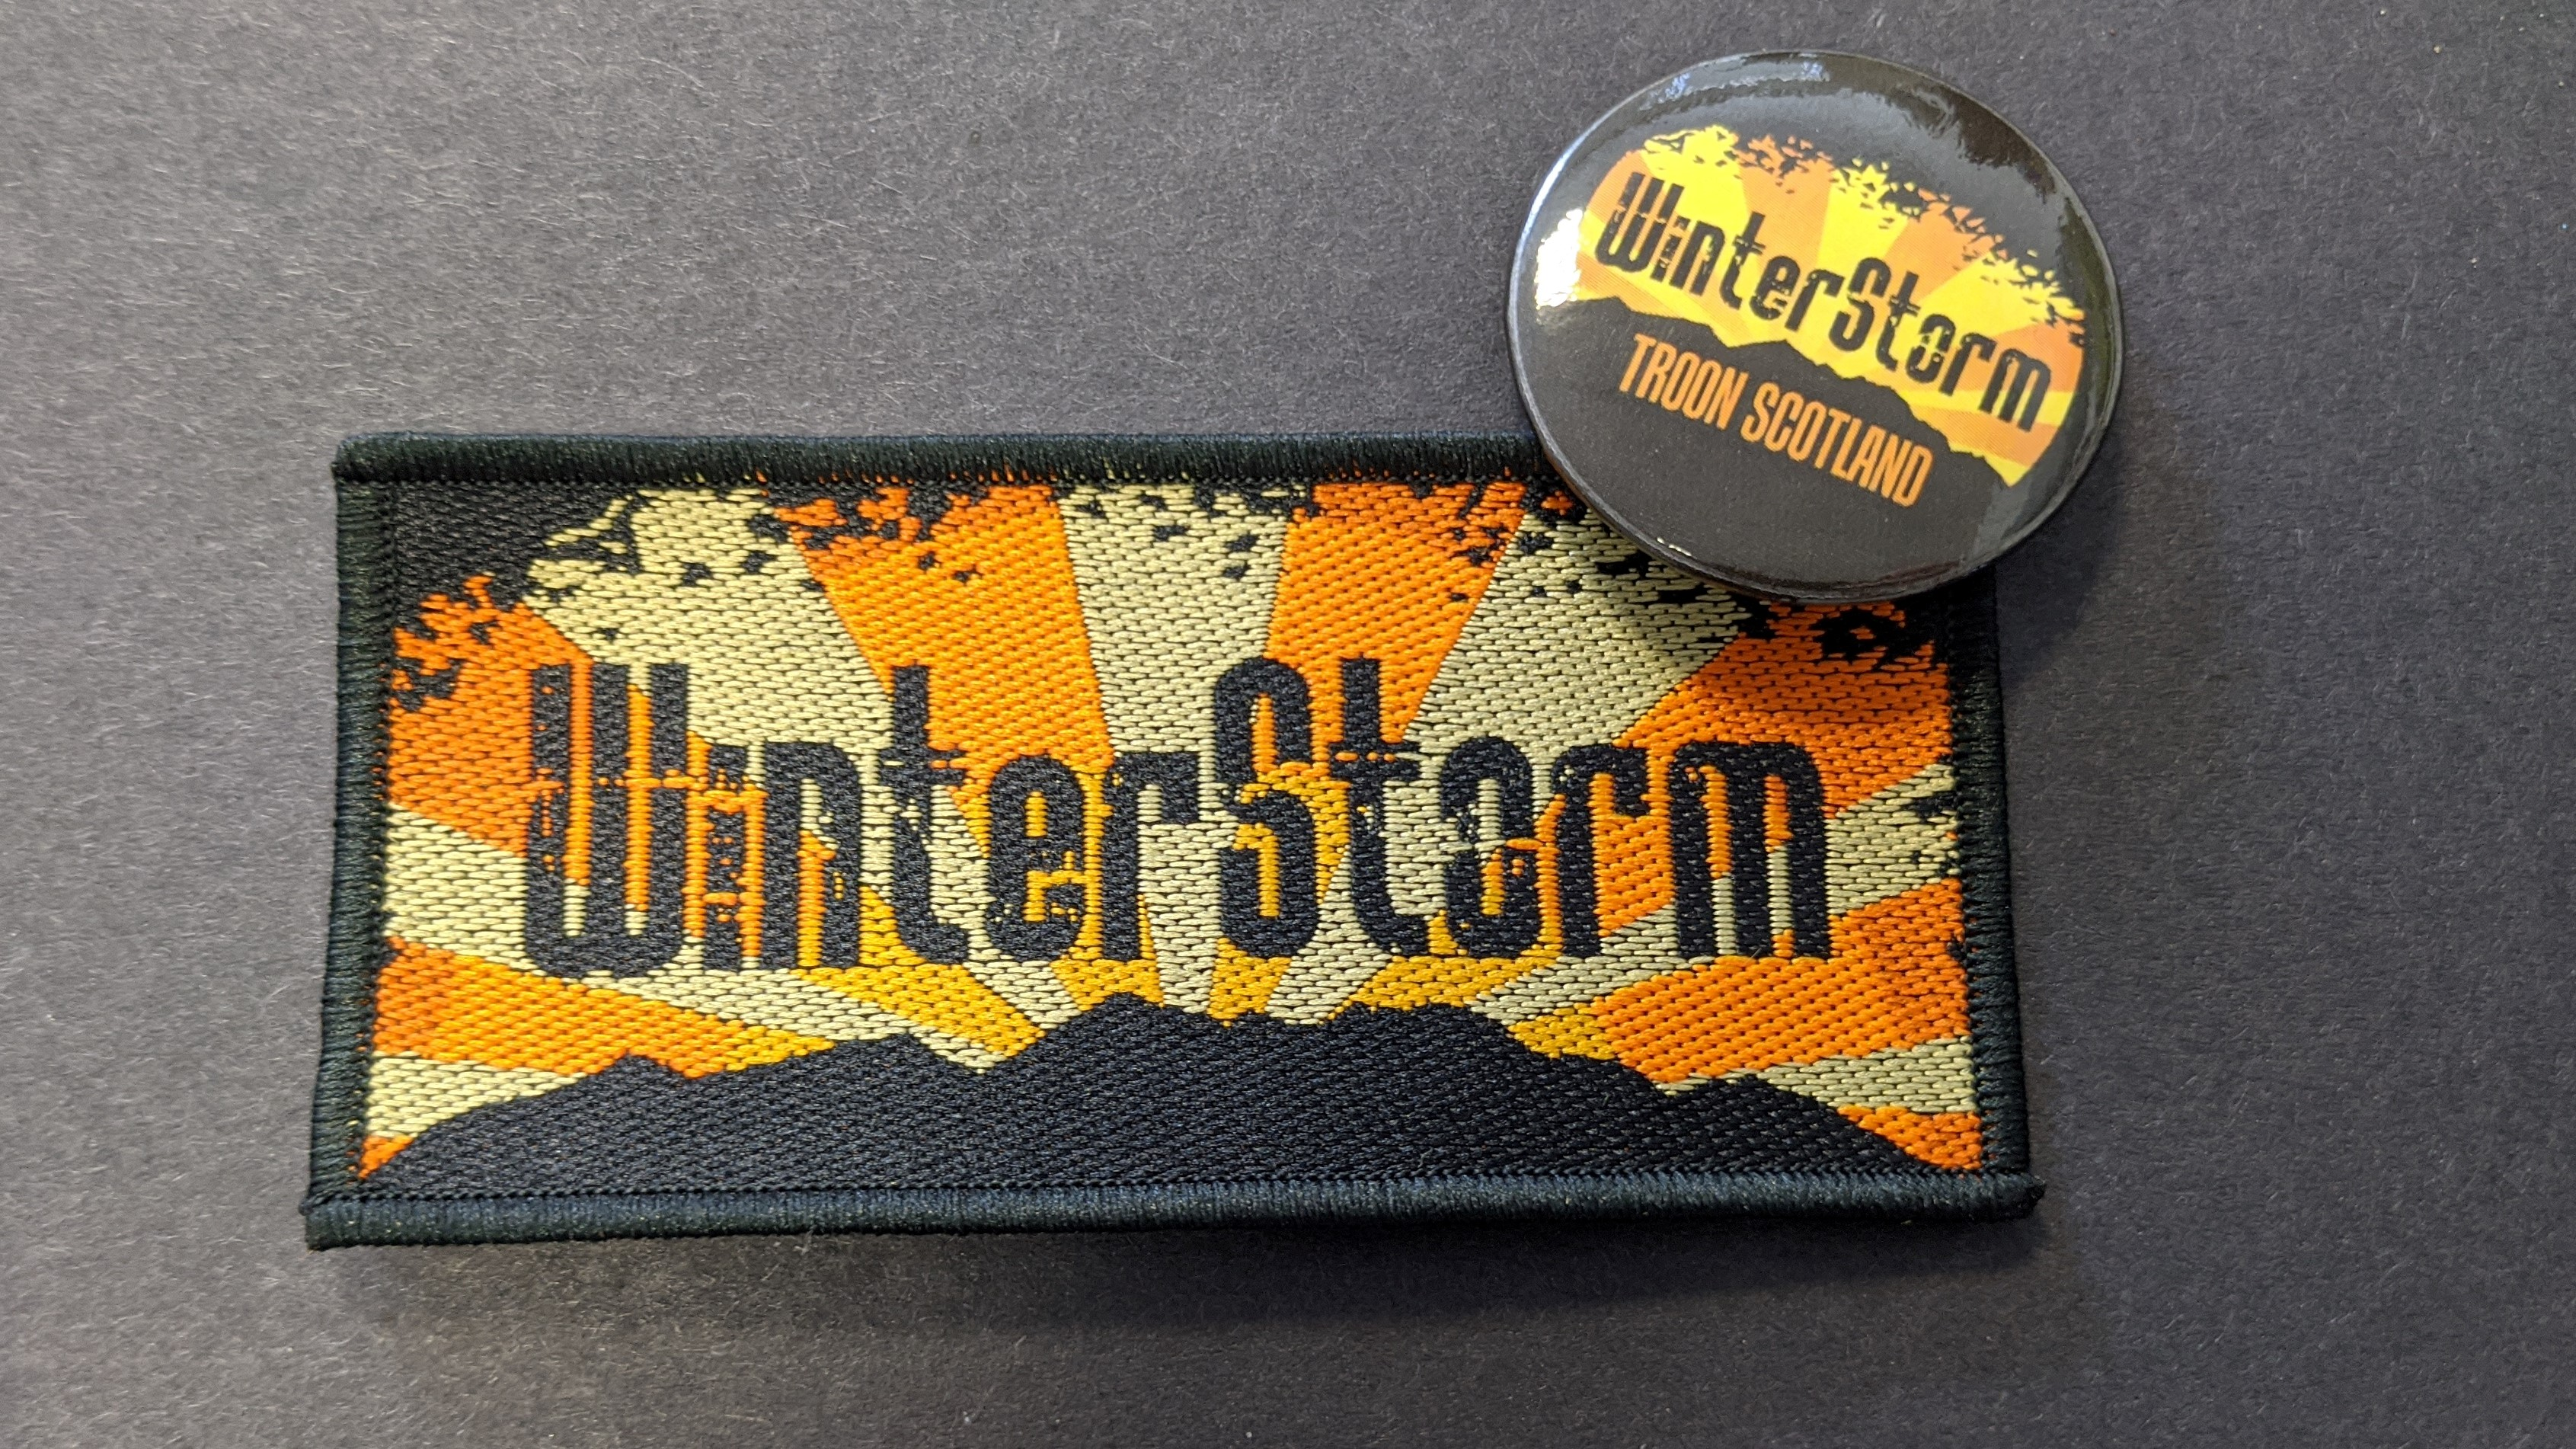 WinterStorm - Merchandise - Embroidered Patch and Badge